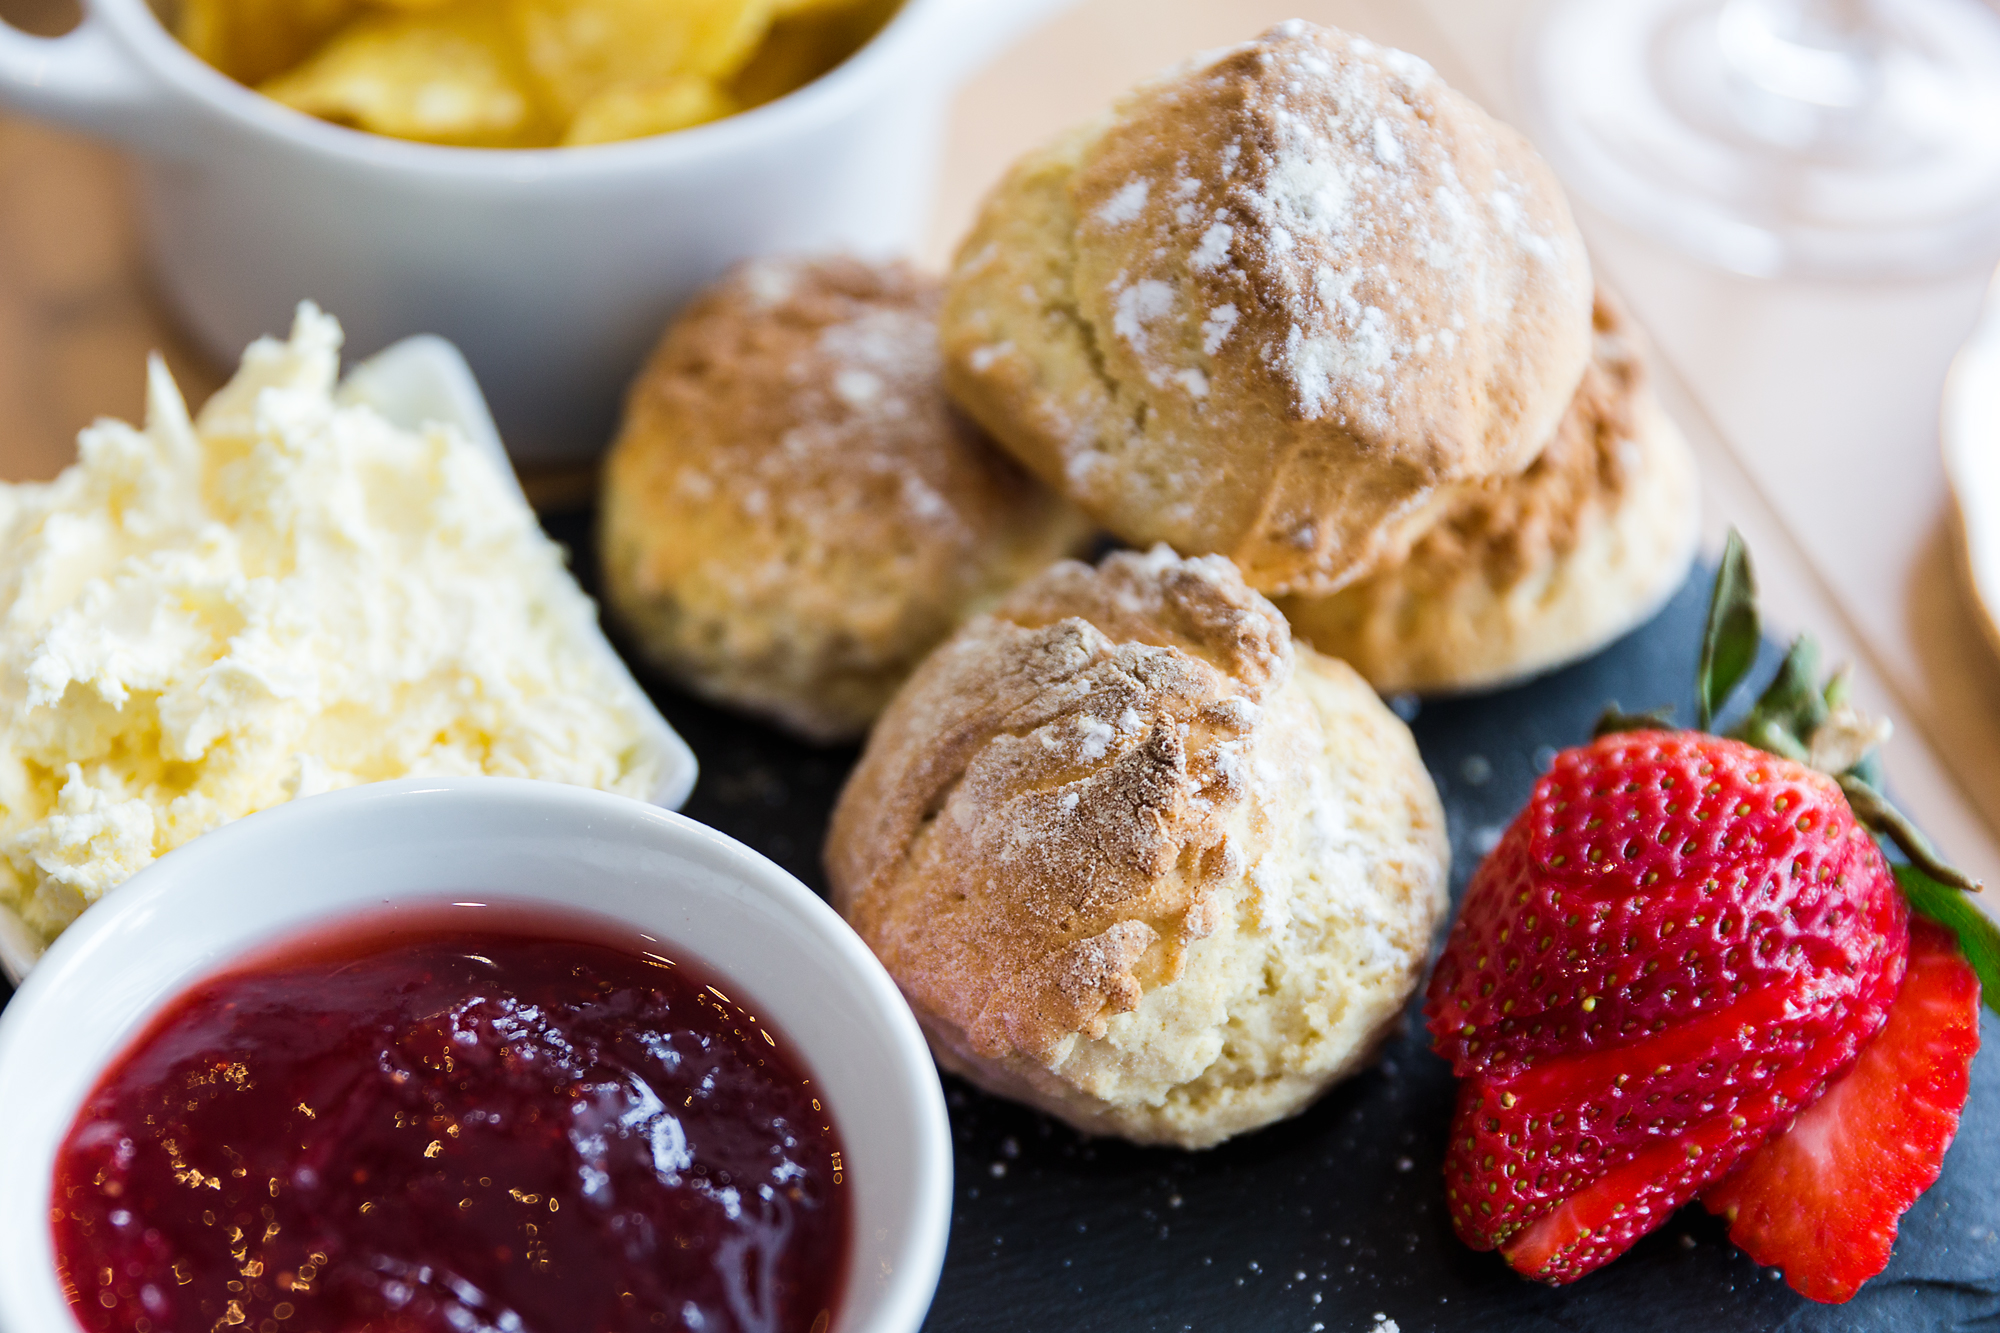 Scones at Miss B's cafe, Bedwas